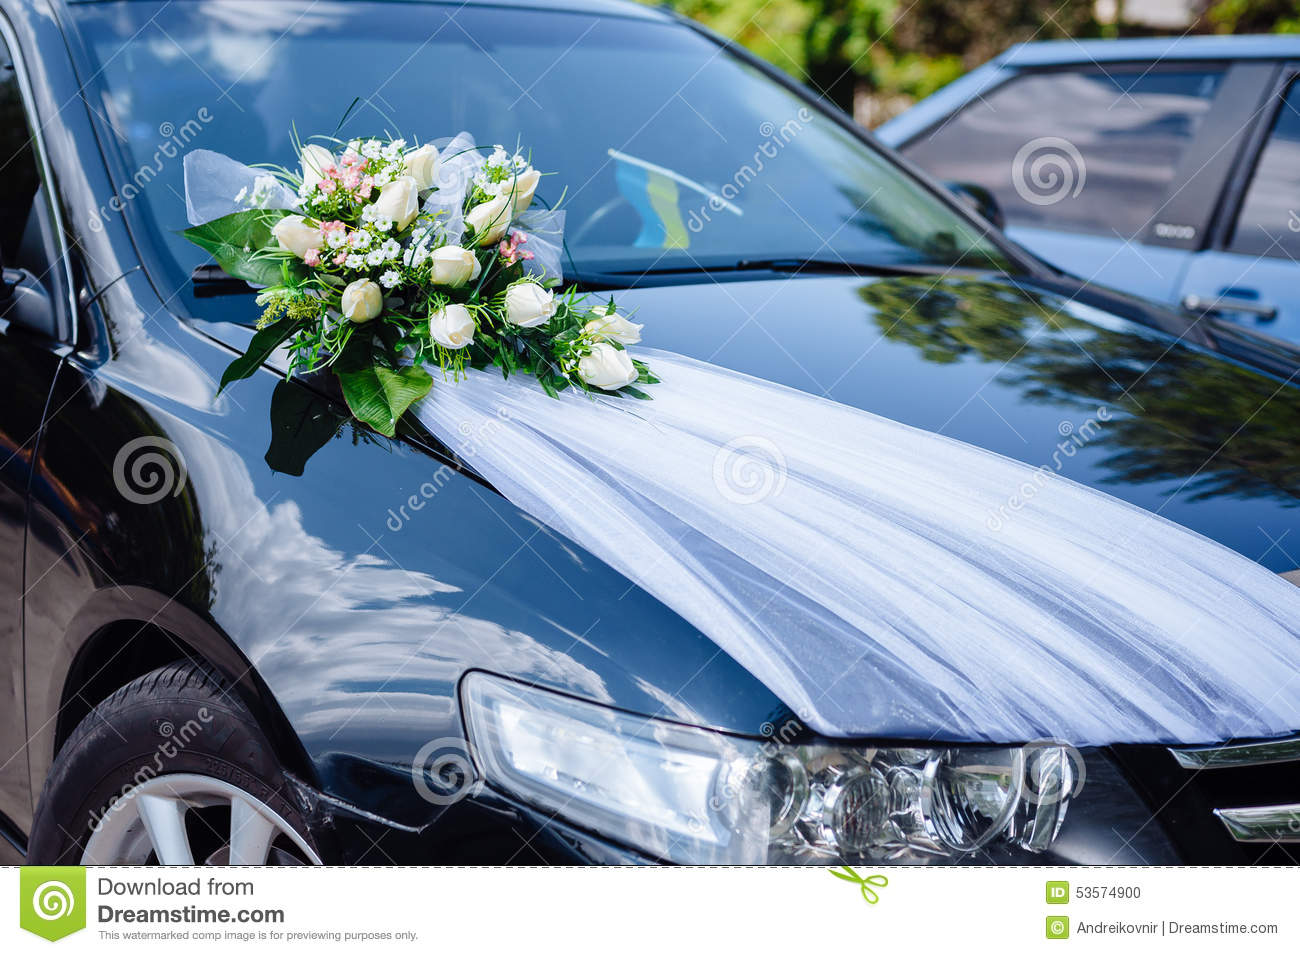 Wedding car decor flowers bouquet car decoration stock photo wedding car decor flowers bouquet car decoration couple bright junglespirit Choice Image